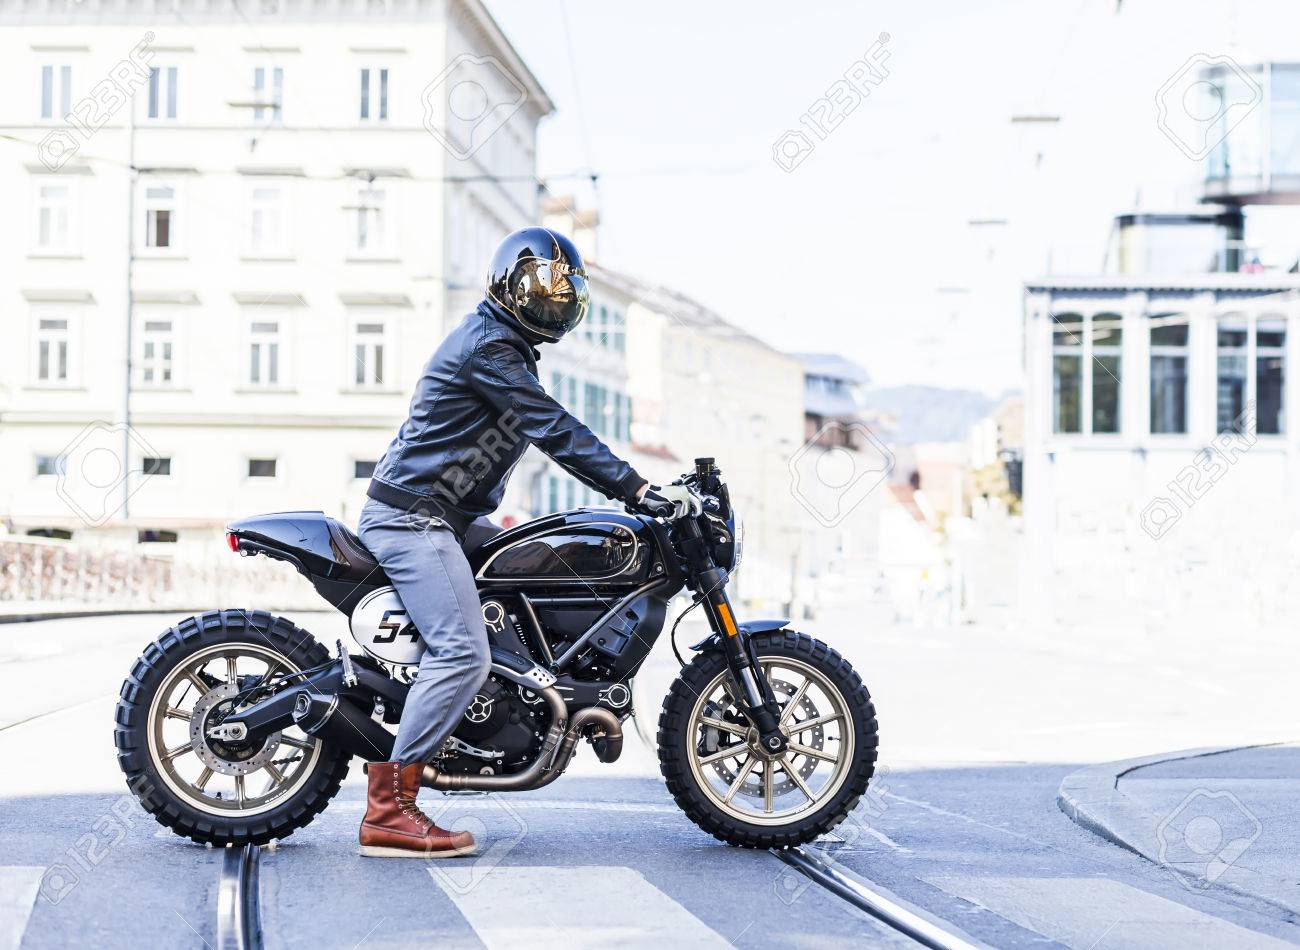 Motorcycle Rider On Custom Made Scrambler Style Cafe Racer In The City Stock Photo